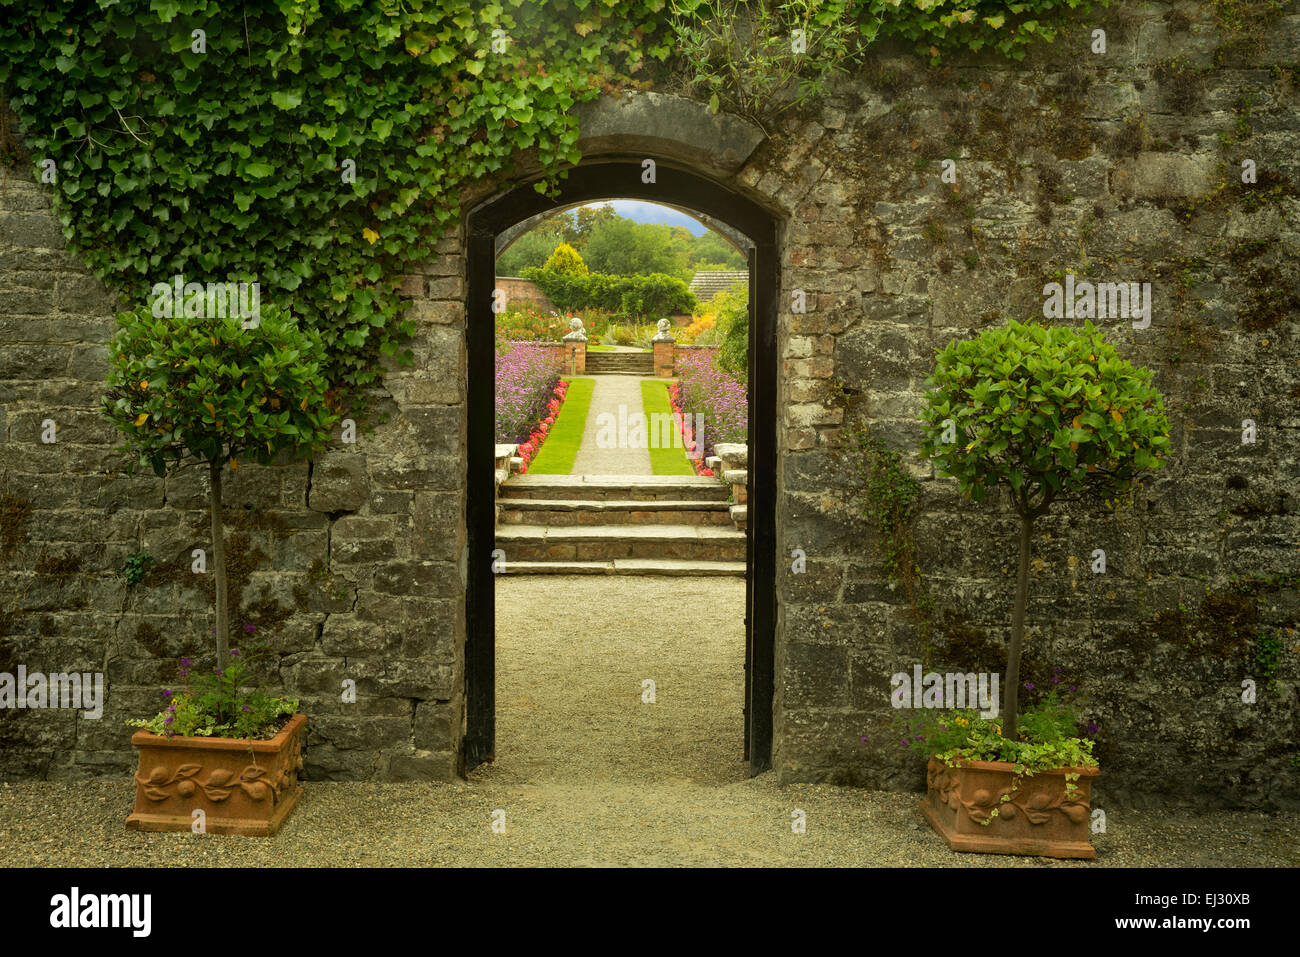 Entry into the Gardens at Dromoland Castle. Ireland - Stock Image